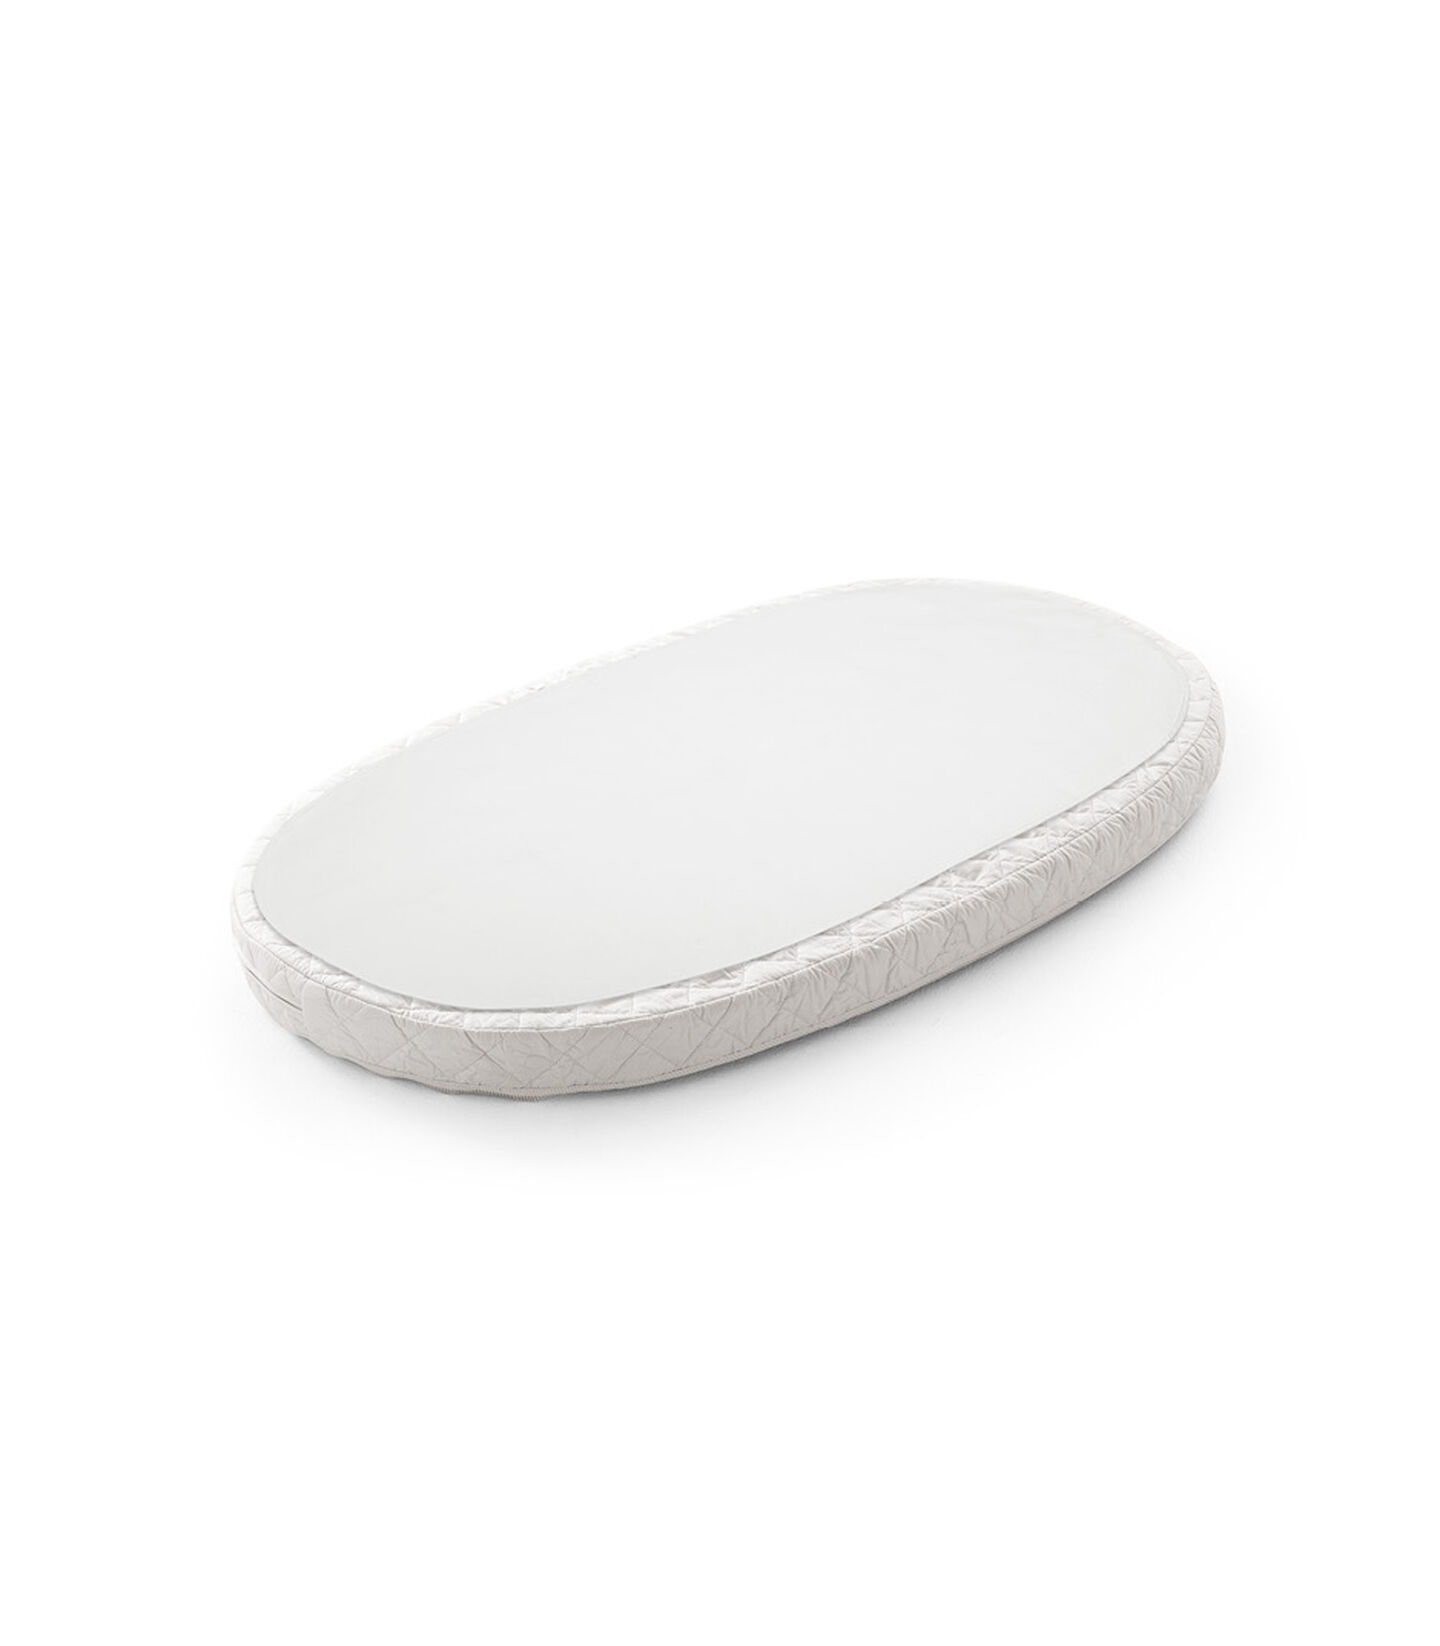 Stokke® Sleepi™ Bed Protection Sheet. White view 2